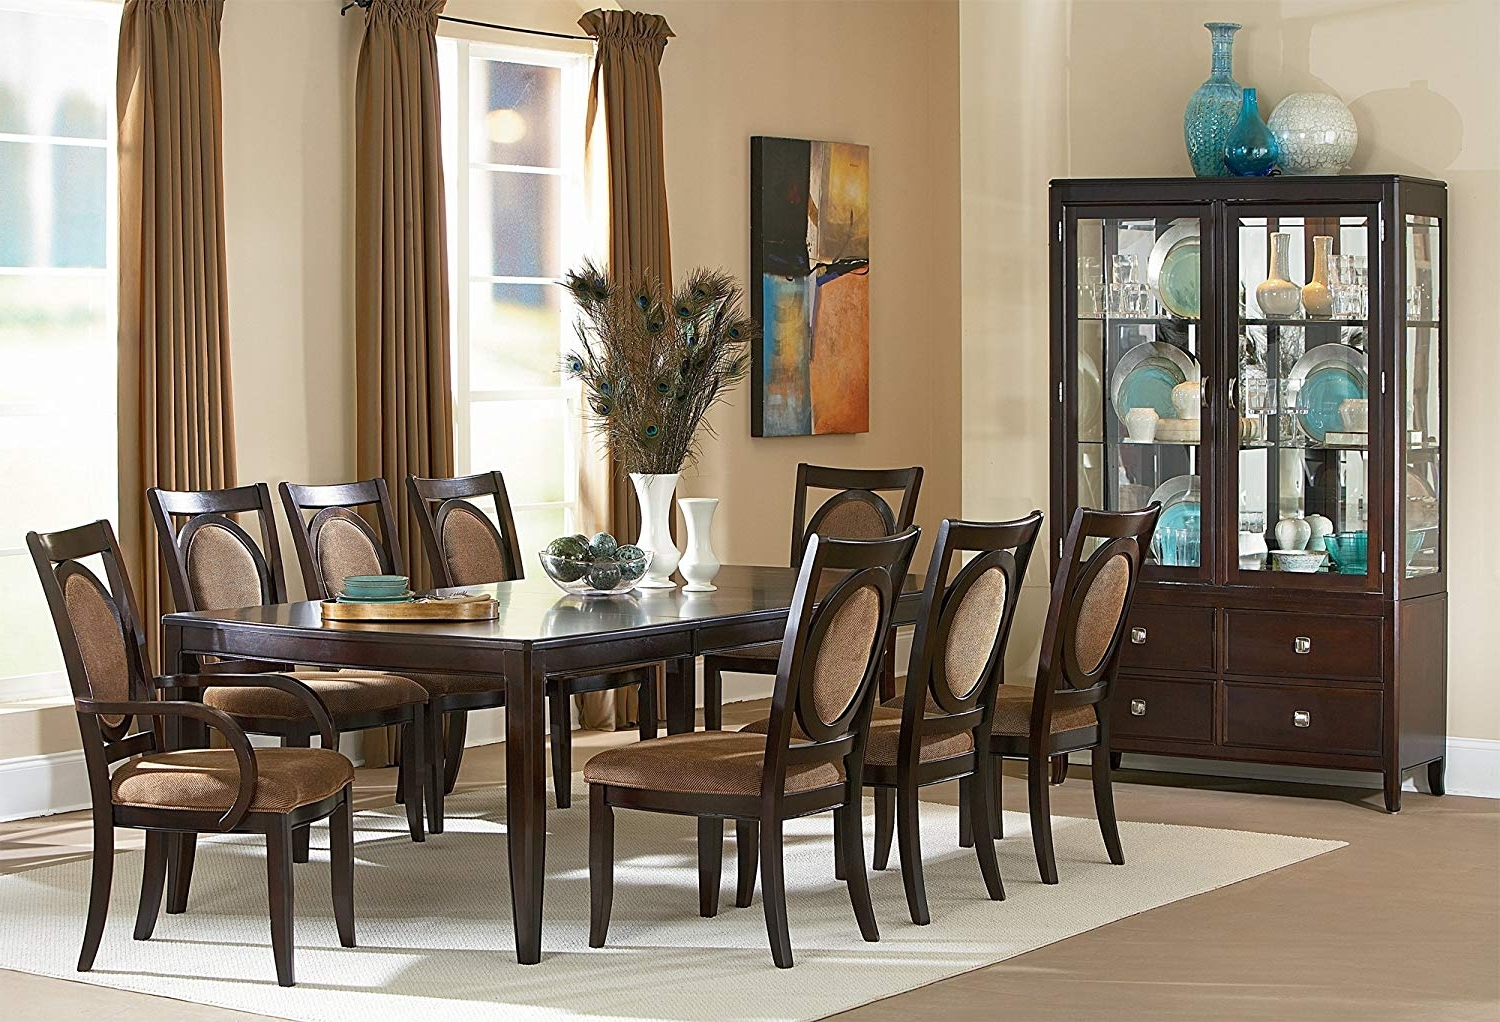 Dining Tables Set For 8 intended for Well-known Amazon - Steve Silver Company Montblanc Table With Two 18